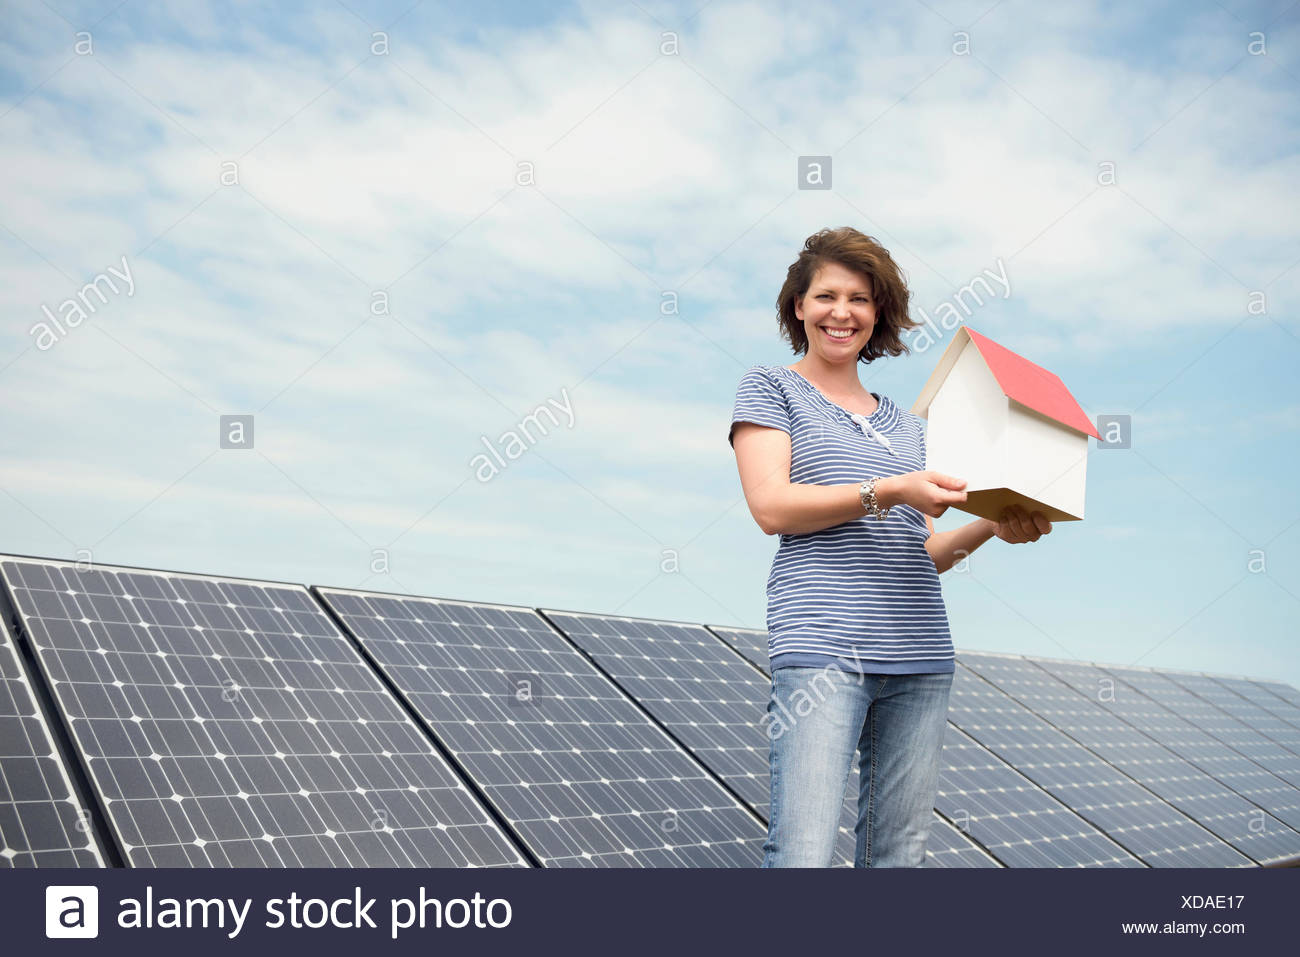 Woman Holding Small Model House Solar Energy Stock Photo